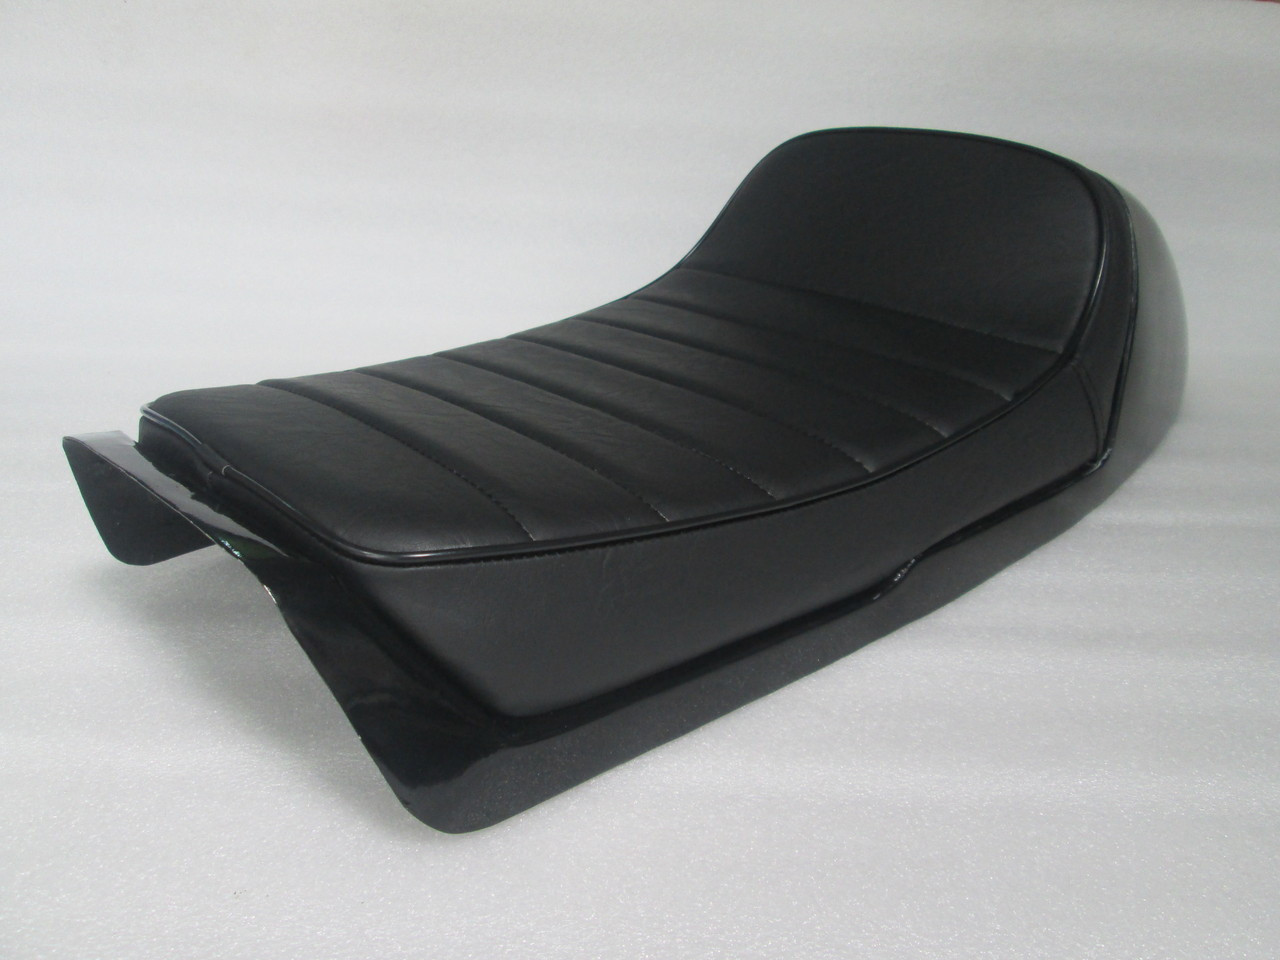 Honda CB750F super sport 1975 - 1978 Complete seat with Metal Cowl will work with original fender #4235